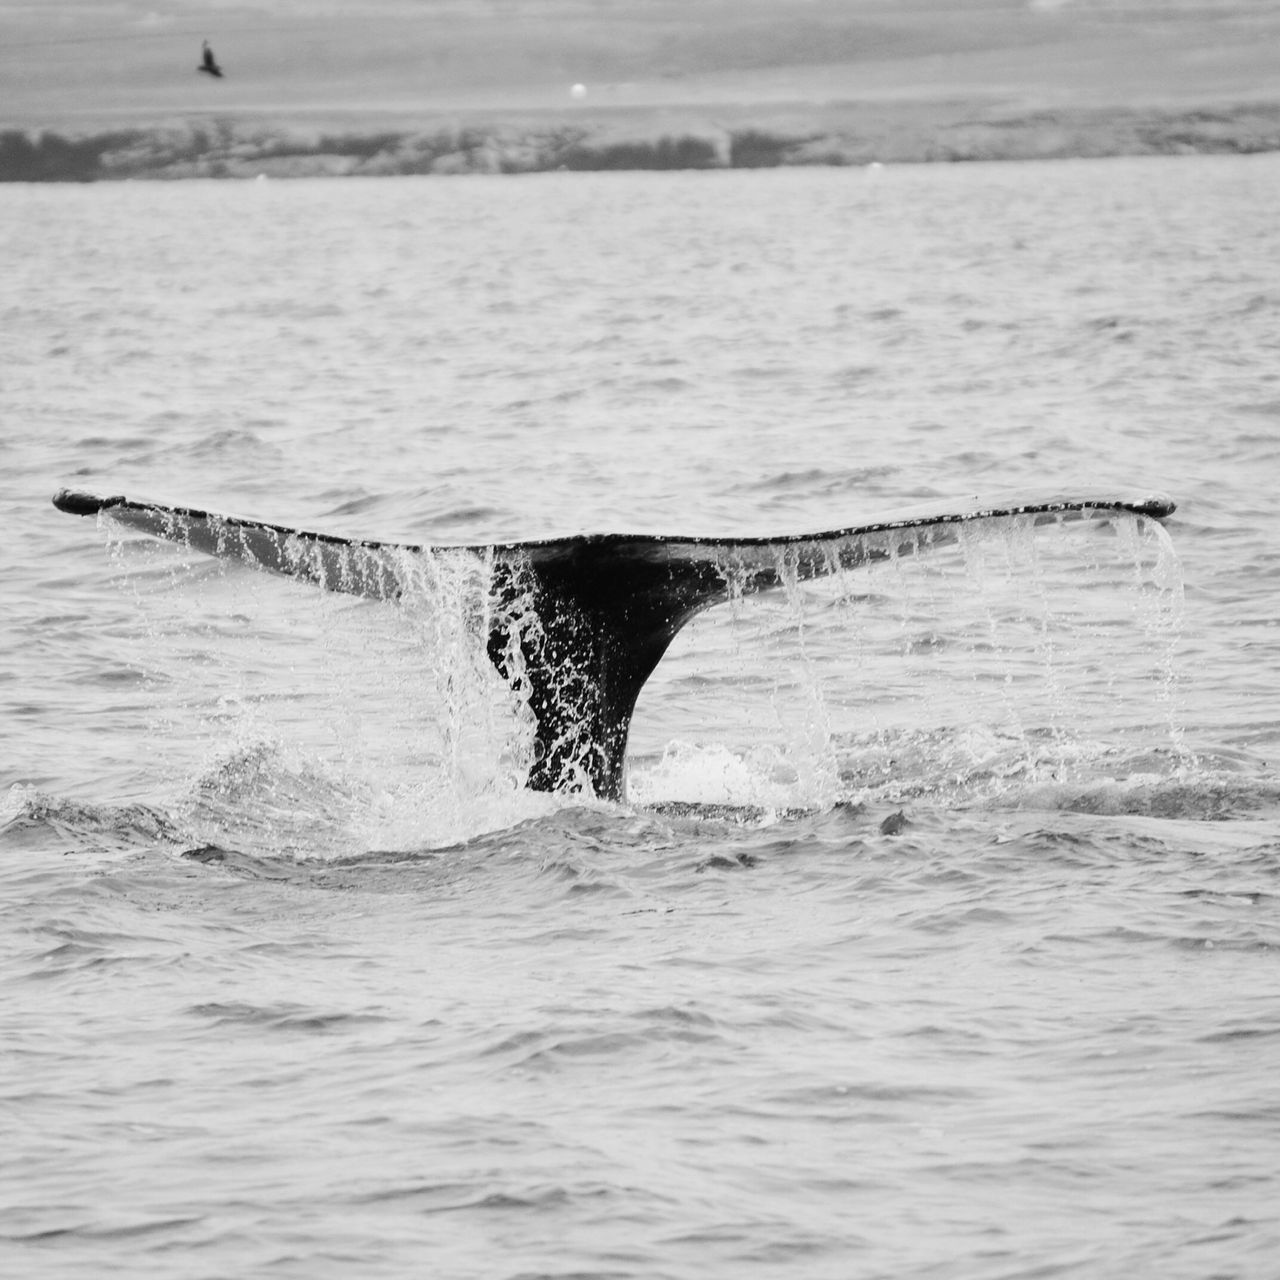 Iceland Whale Watching Beautiful Nature Nature Blackandwhite Photography